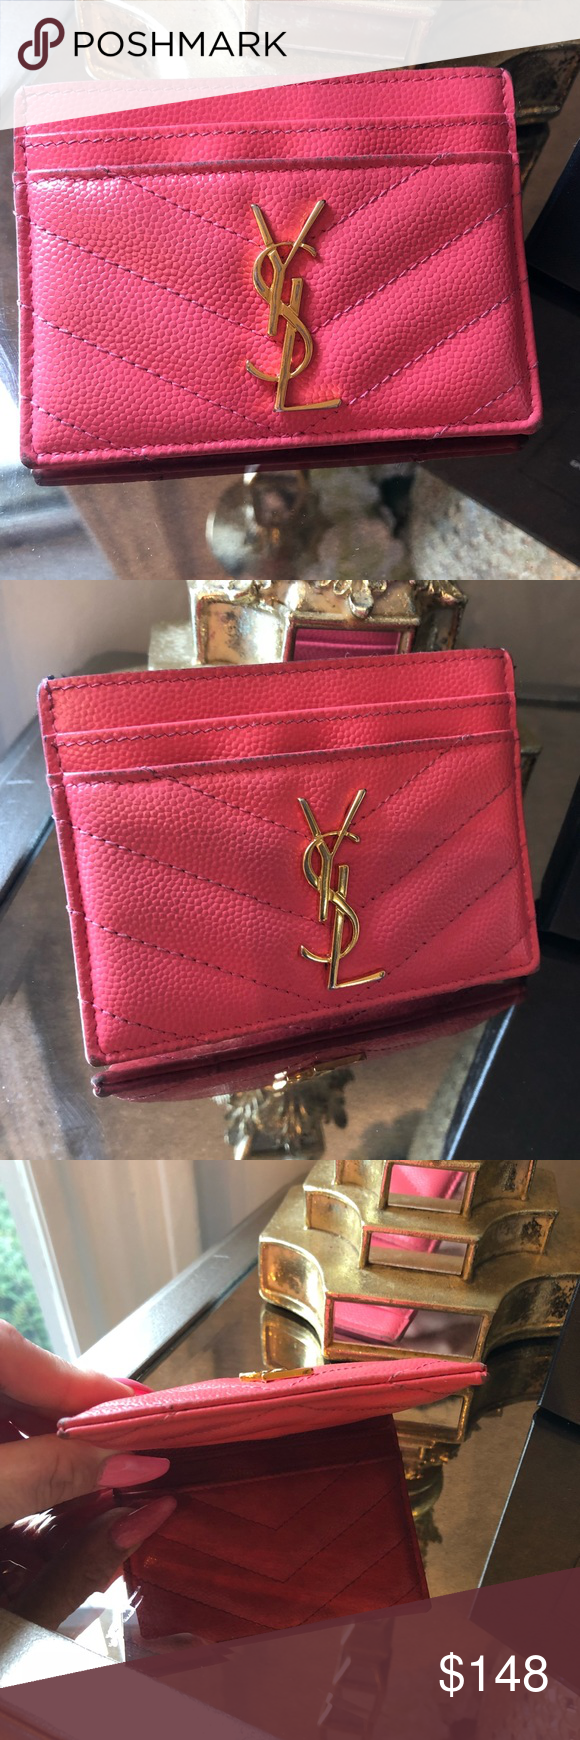 33463d4cc8a Saint Laurent Matelassé Credit Card Holder Saint Laurent Women's Matelassé  Leather Credit Card Holder - Fuchsia is the color . Comes with box and dust  bag ...